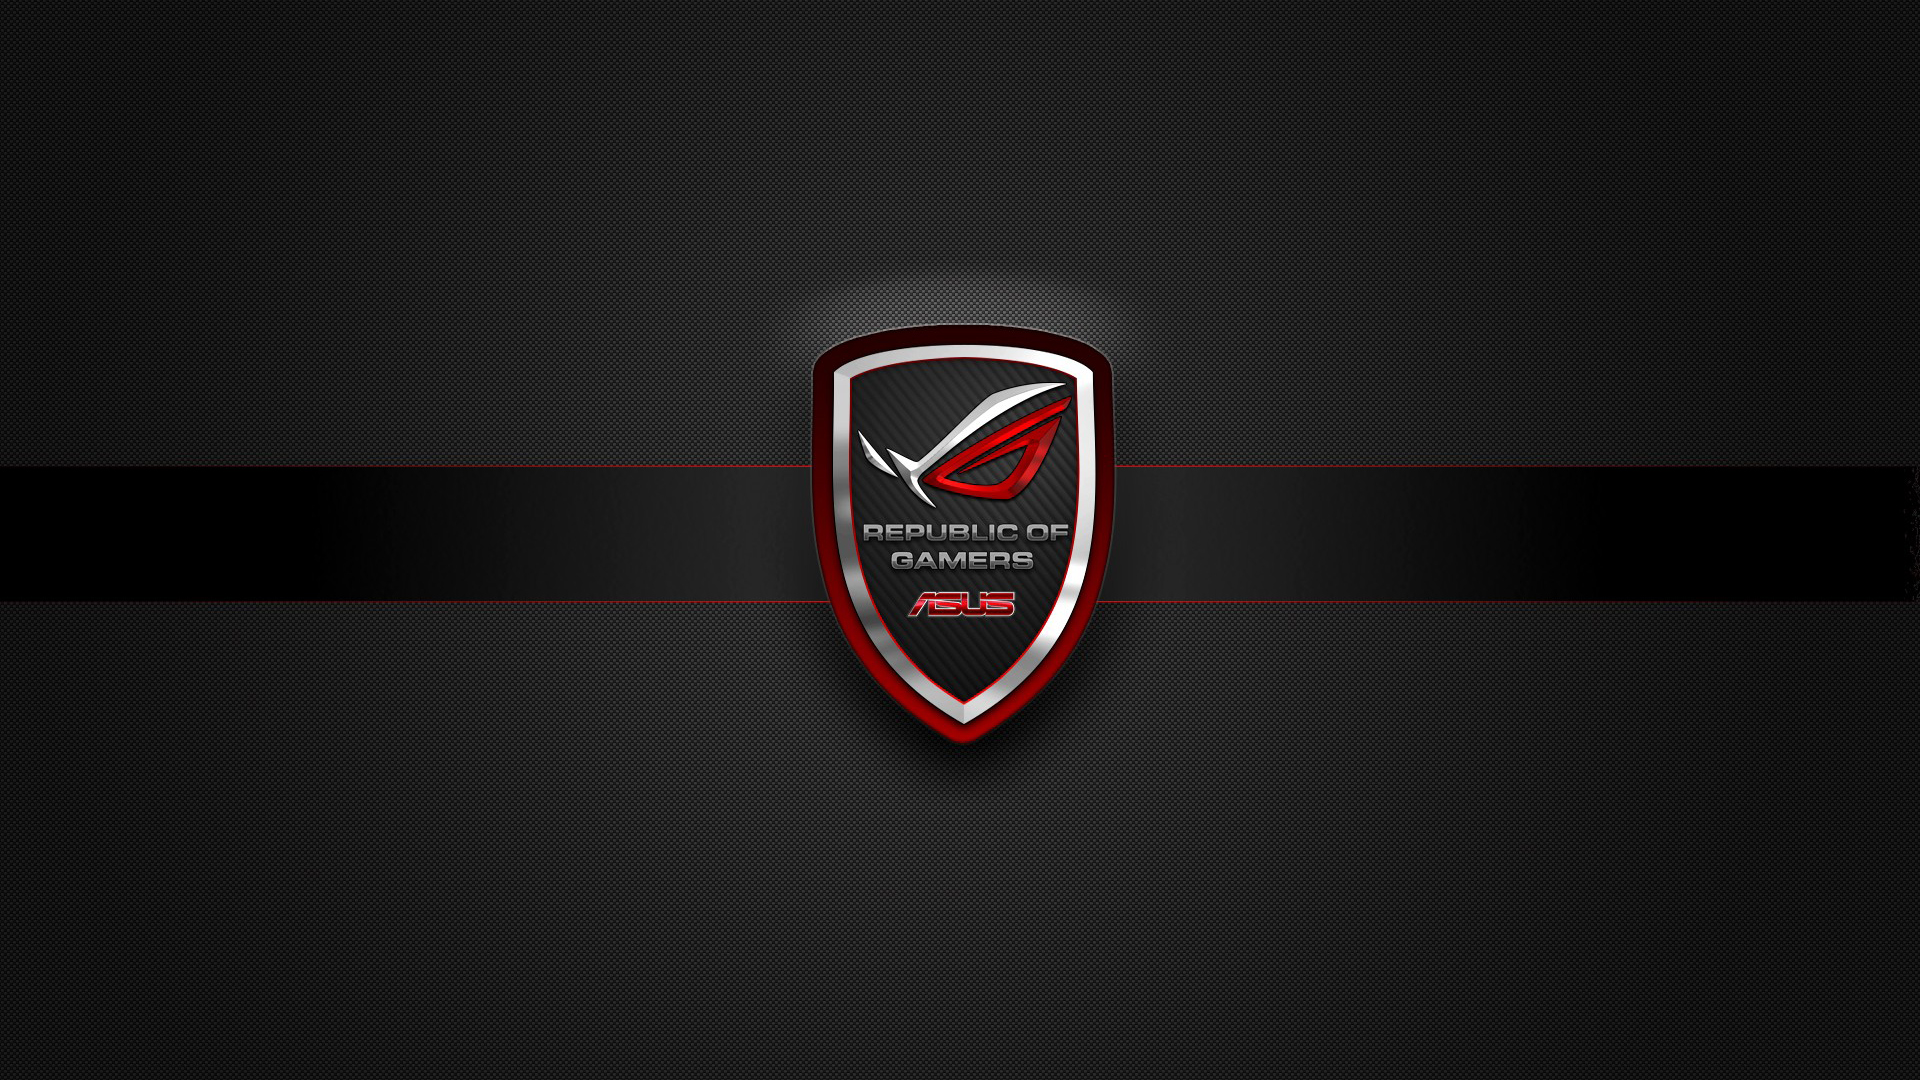 asus rog republic of gamers badge logo hd 1920x1080 1080p wallpaper 1920x1080